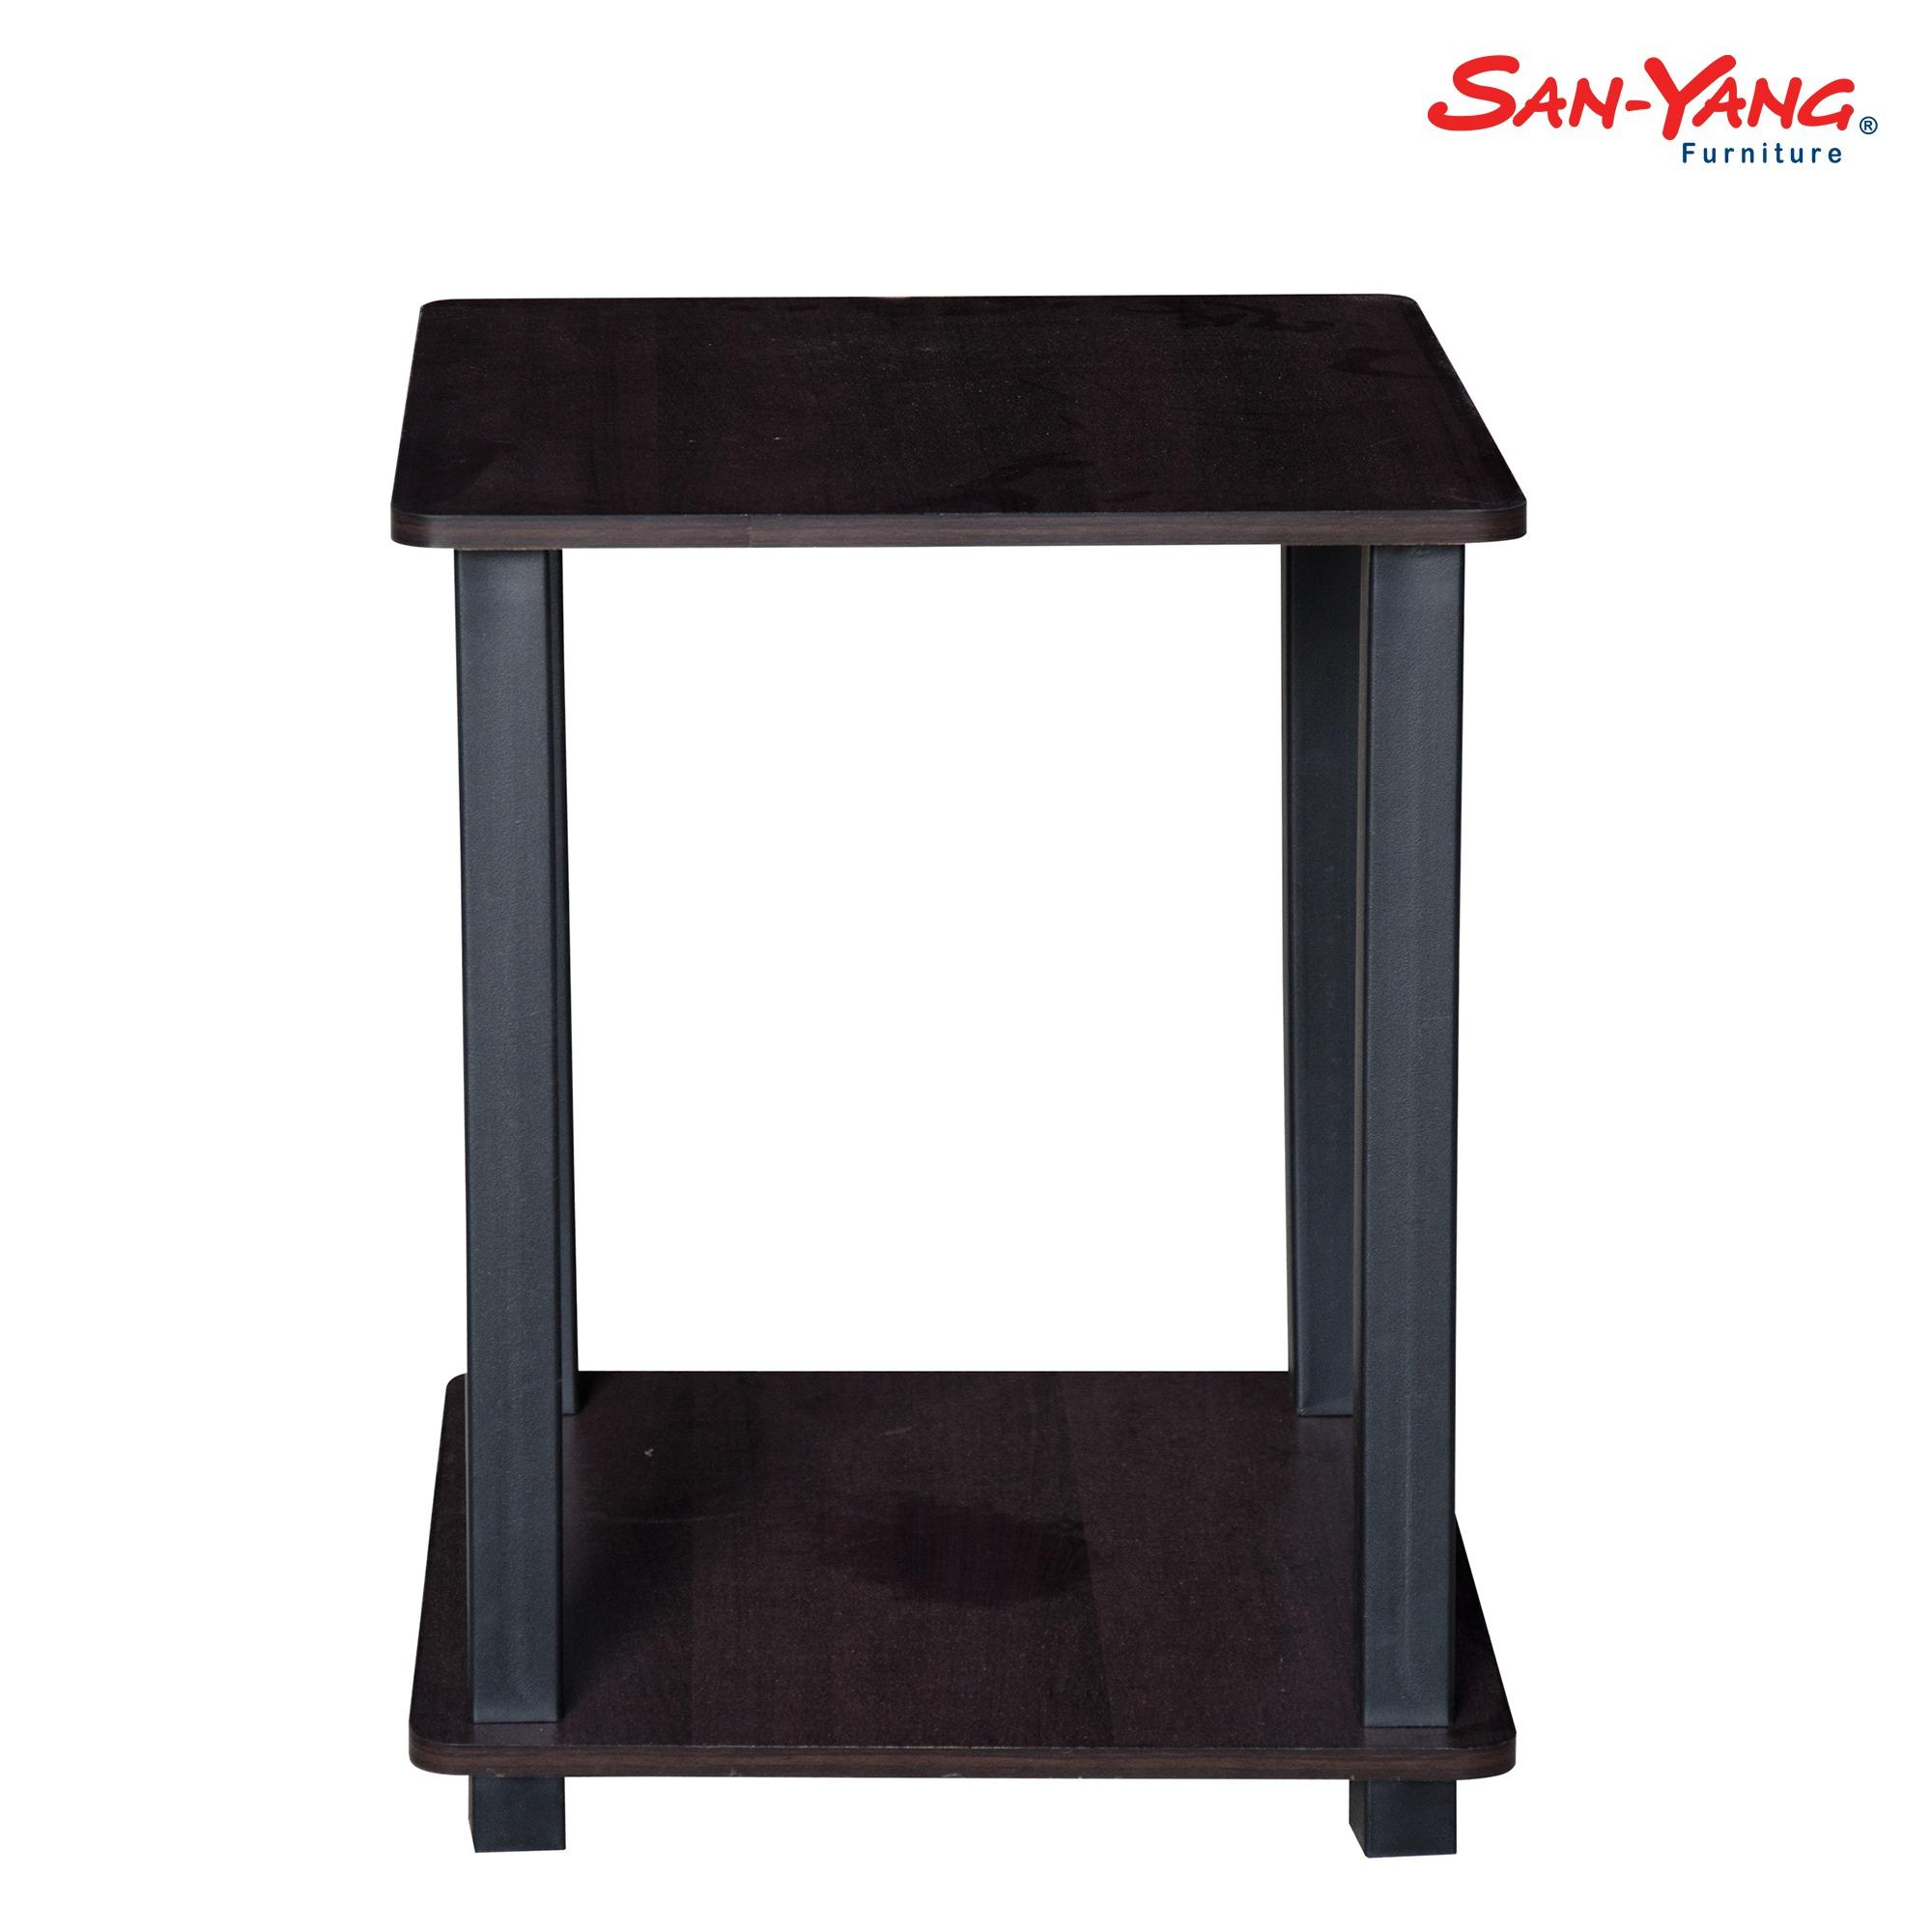 Furniture for sale Furnitures prices brands & review in